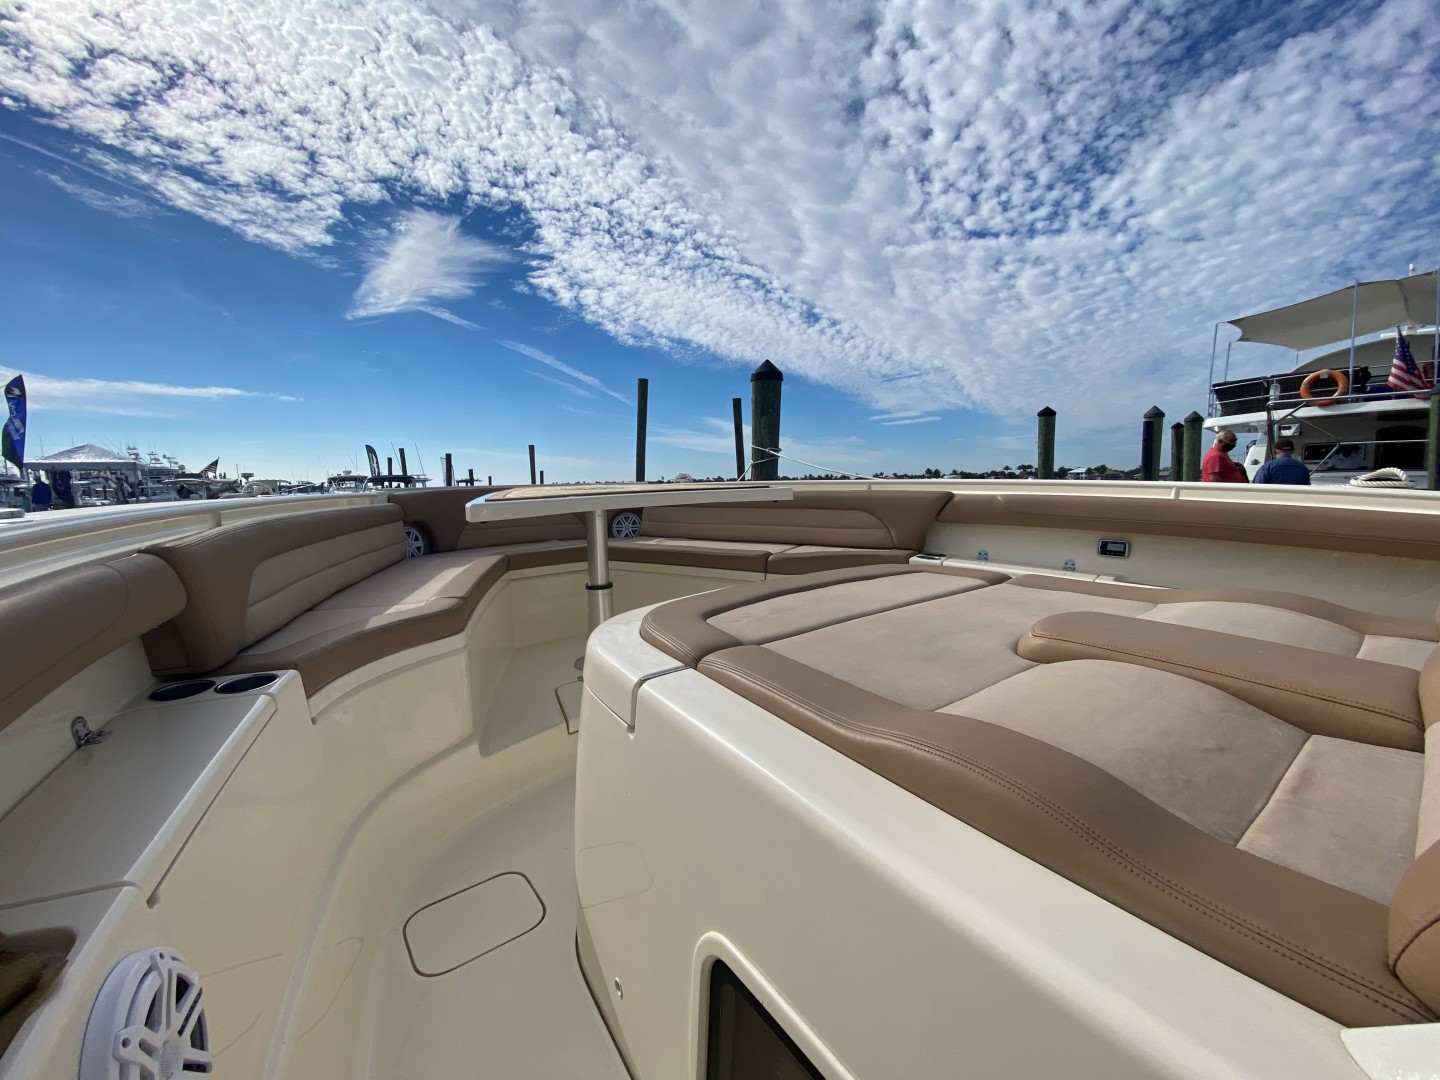 Scout-420 LXF 2016-Scout 420 LXF Delray Beach-Florida-United States-1593762 | Thumbnail